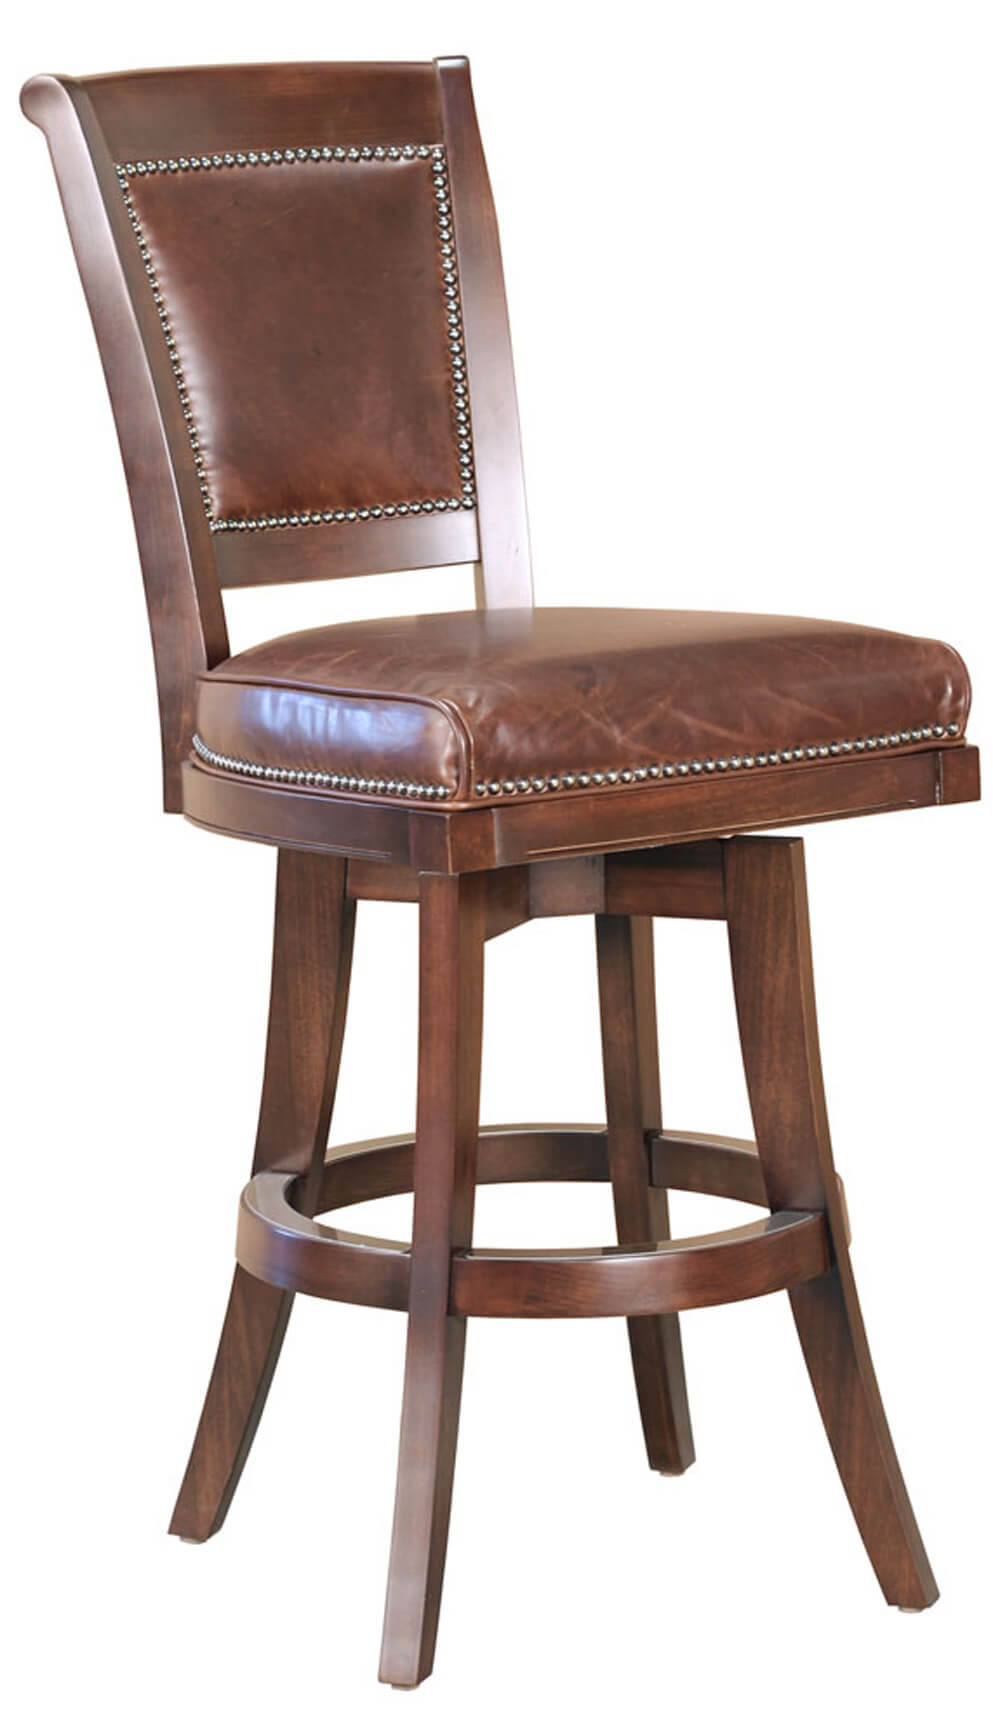 California house s2920 bar stool - Beautify your bar area with unique barstools ...